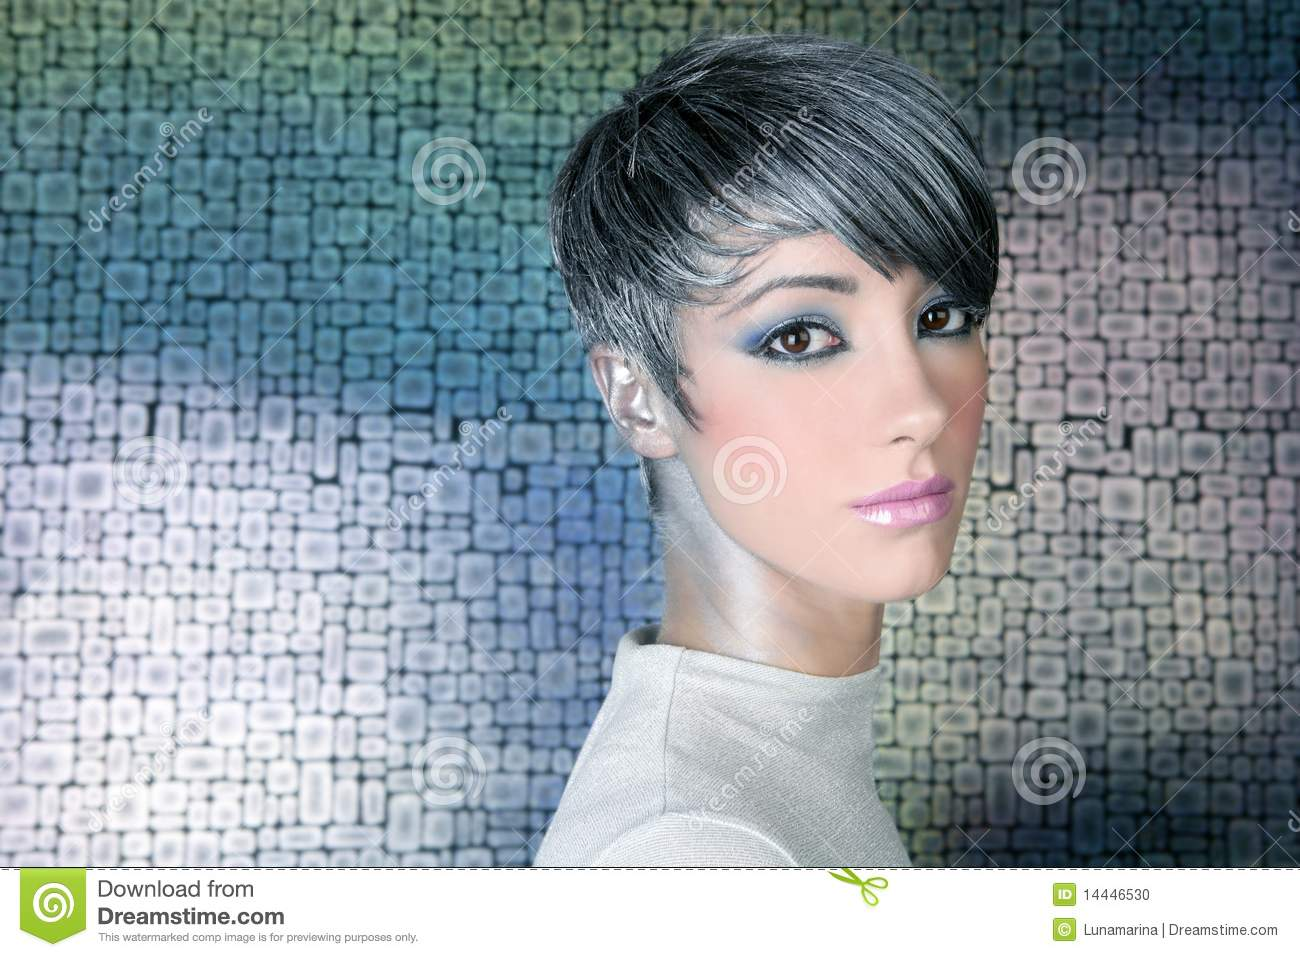 Silver Futuristic Hairstyle Makeup Portrait Stock Photo